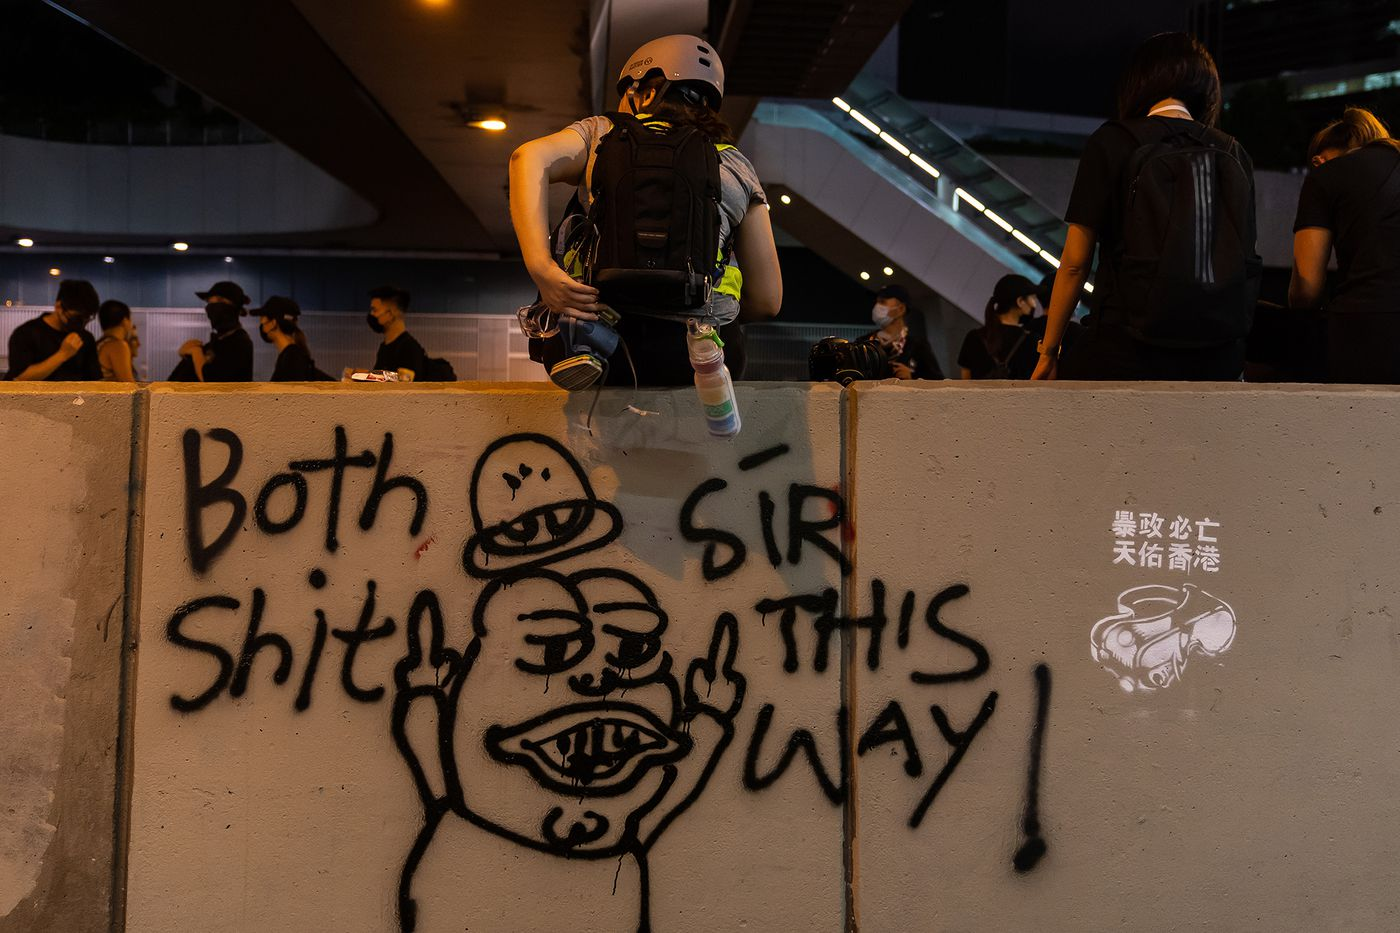 How Pepe the Frog is tied to the Hong Kong protests at Dota